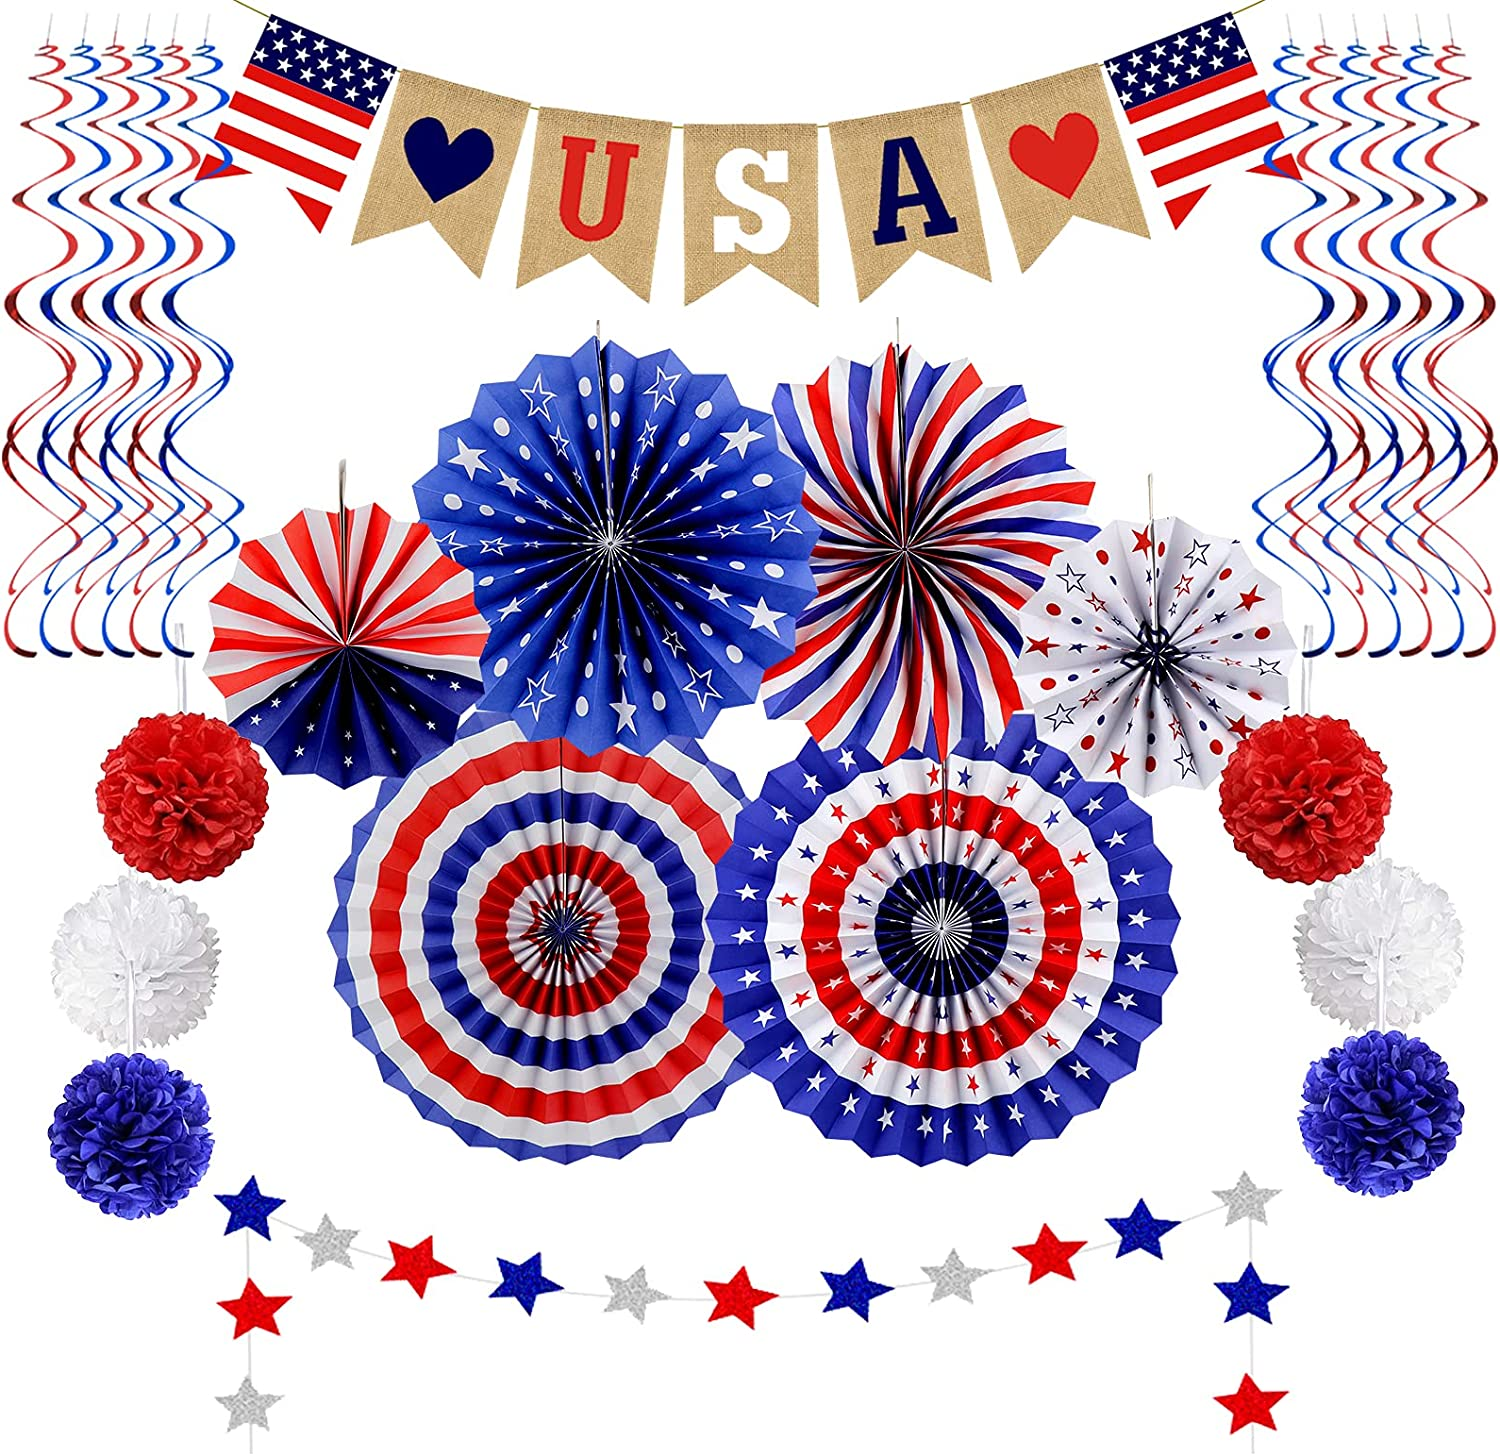 26Pcs 4th of July Patriotic Decorations Set Fourth of July Decor - Love USA Banner, Red White Blue Paper Fans, Star Streamer, Pom Poms, Hanging Swirls Party Supplies for American Theme Party